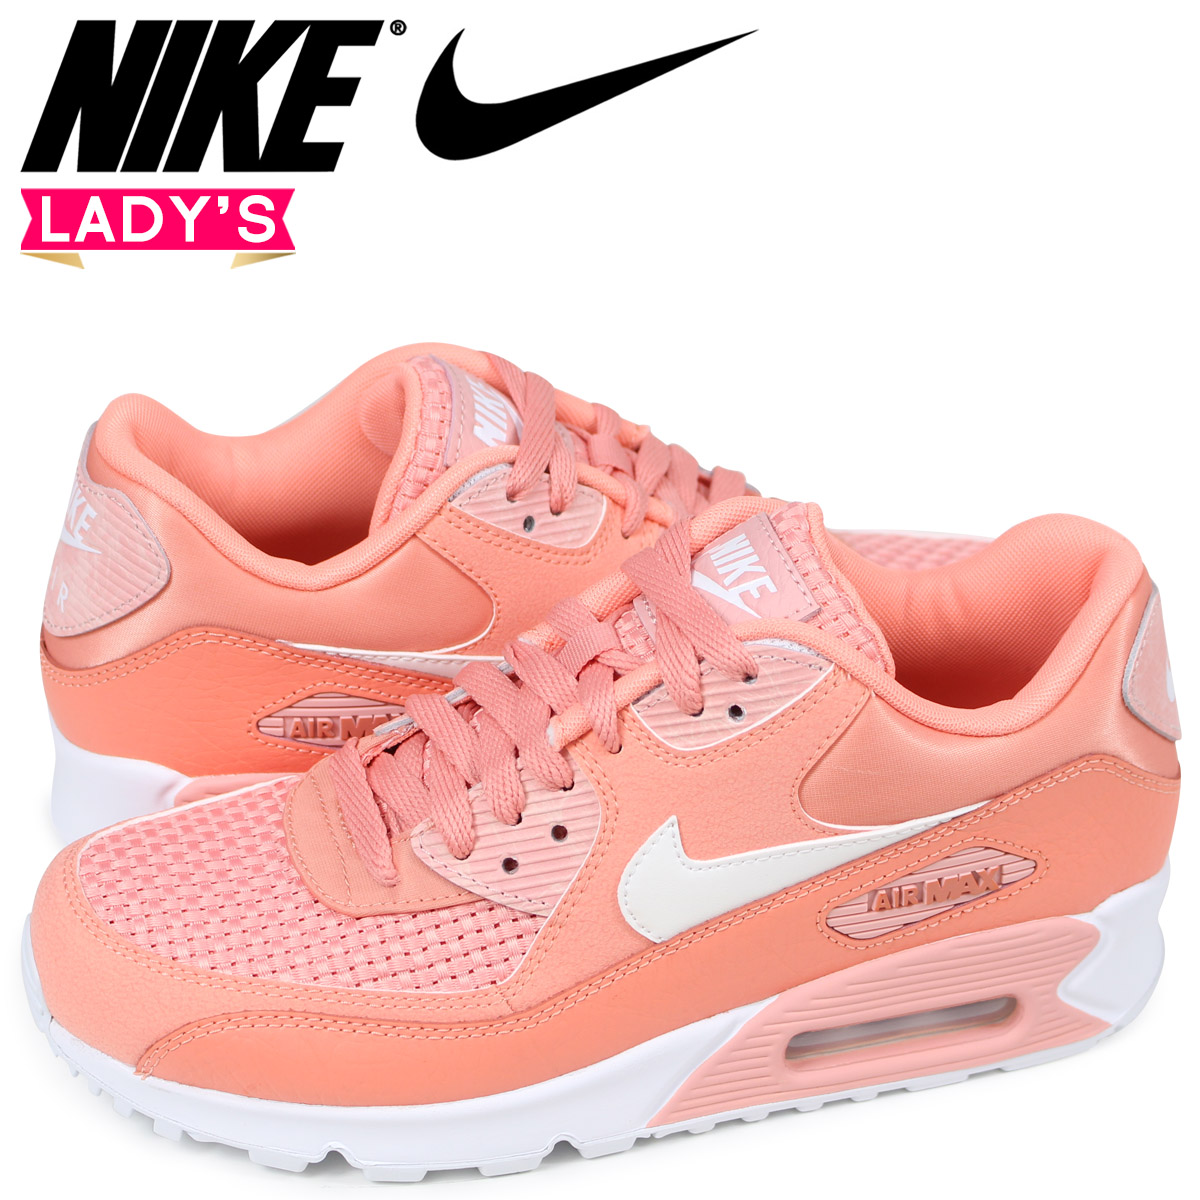 Nike NIKE Air Max 90 Lady's sneakers WMNS AIR MAX 90 SE 881,105 604 pink